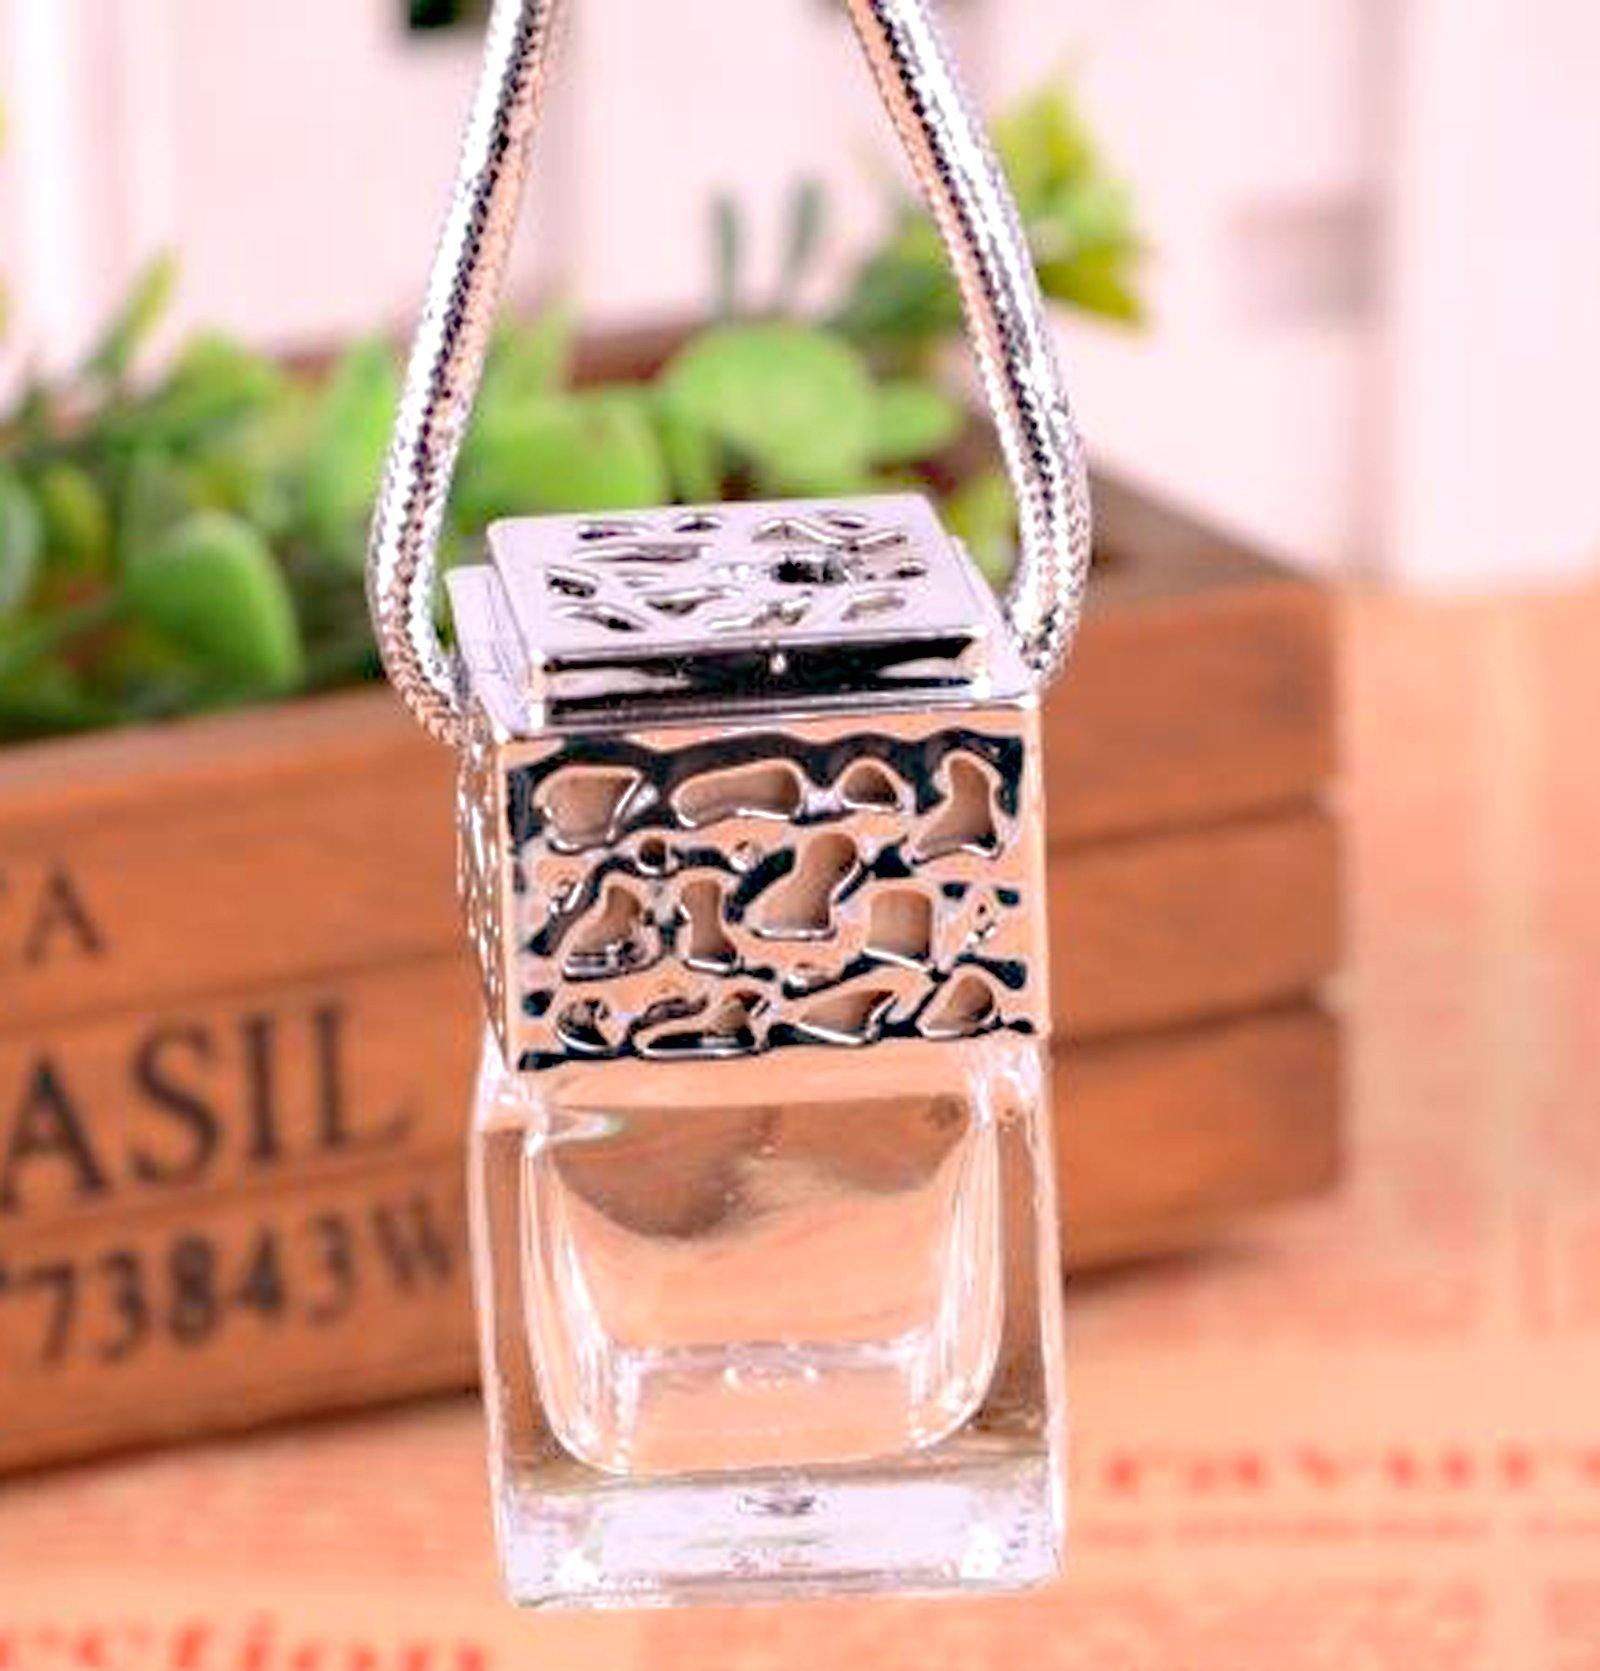 Hanging Fragrance Diffusers Scentful Homes